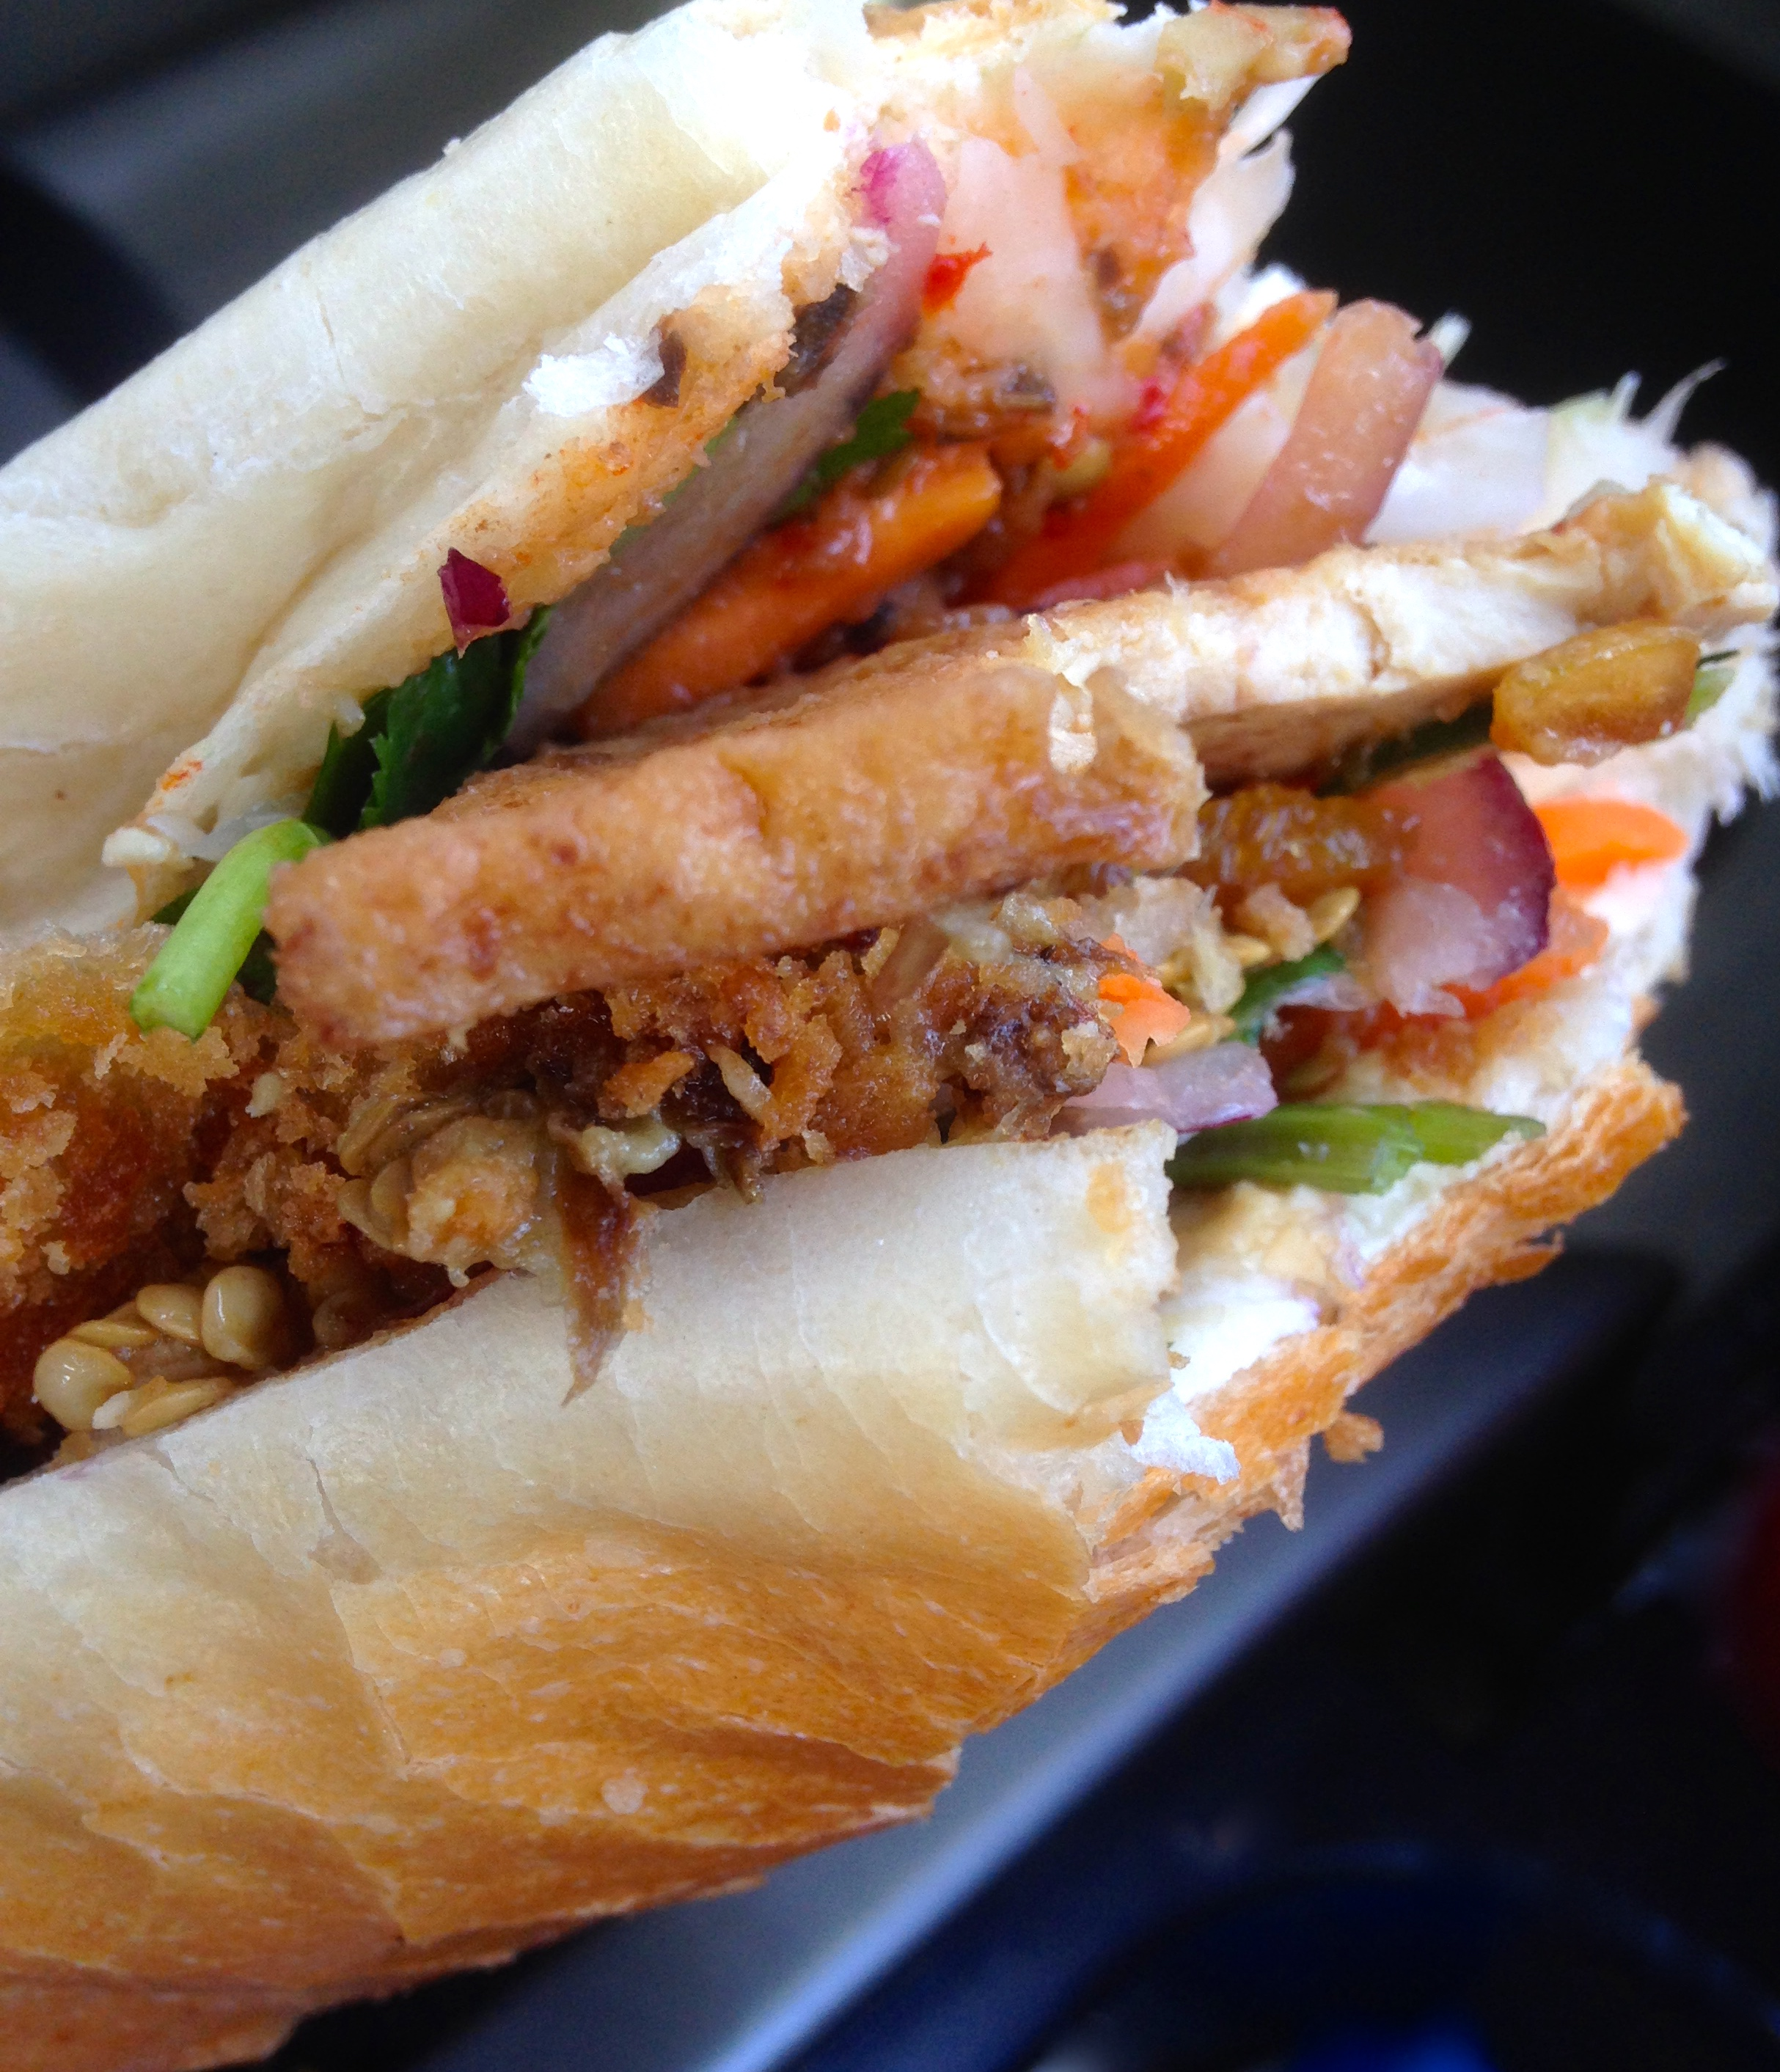 banh mi at trang bakery and cafe